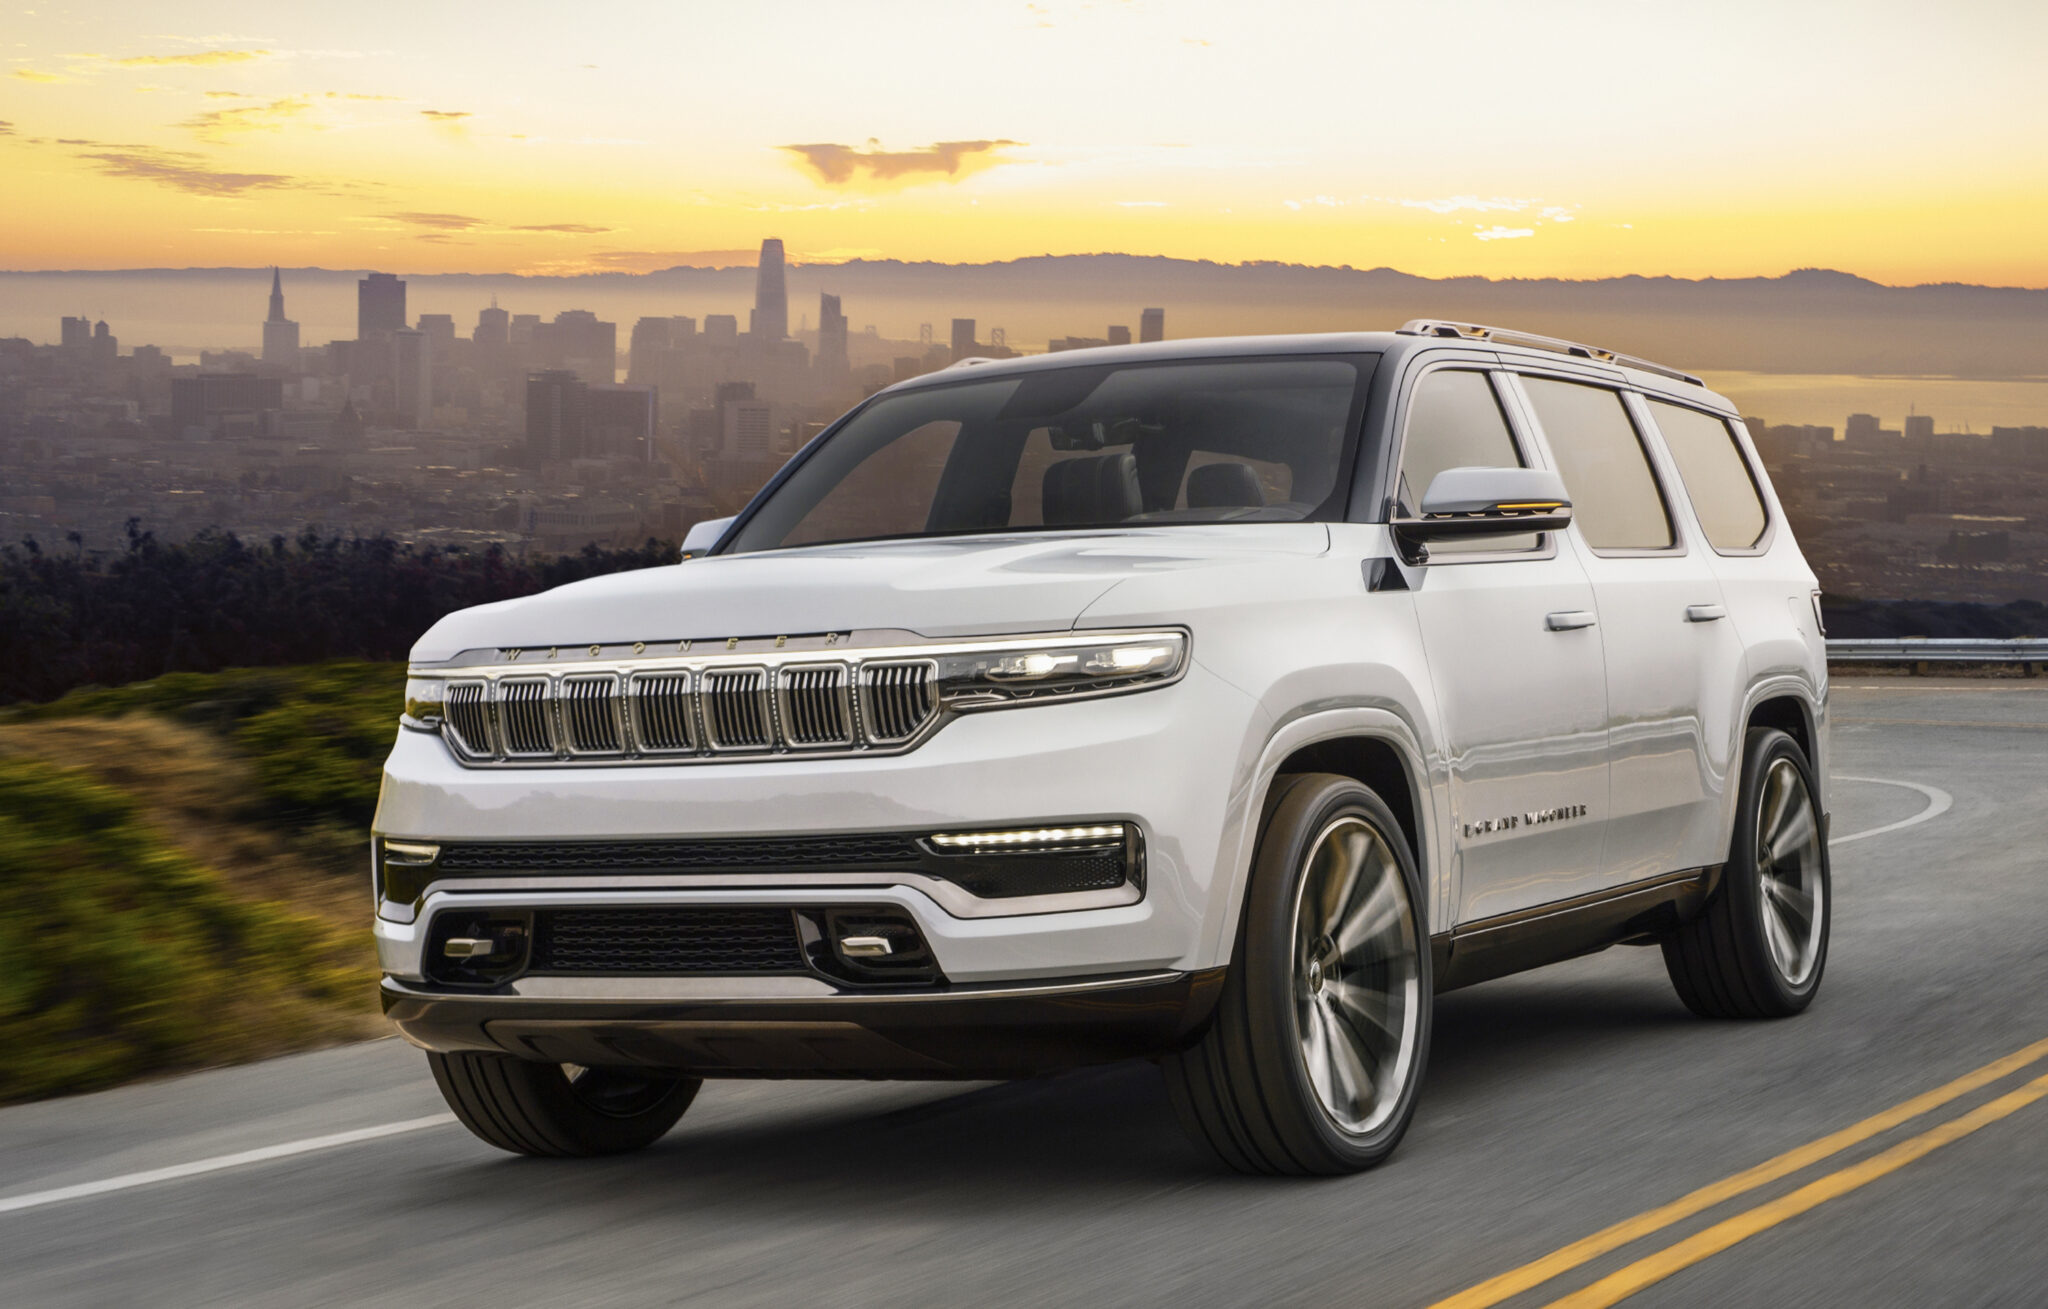 JEEP GRAND WAGONEER CONCEPT GIVES A GLIMPSE OF THE FUTURE